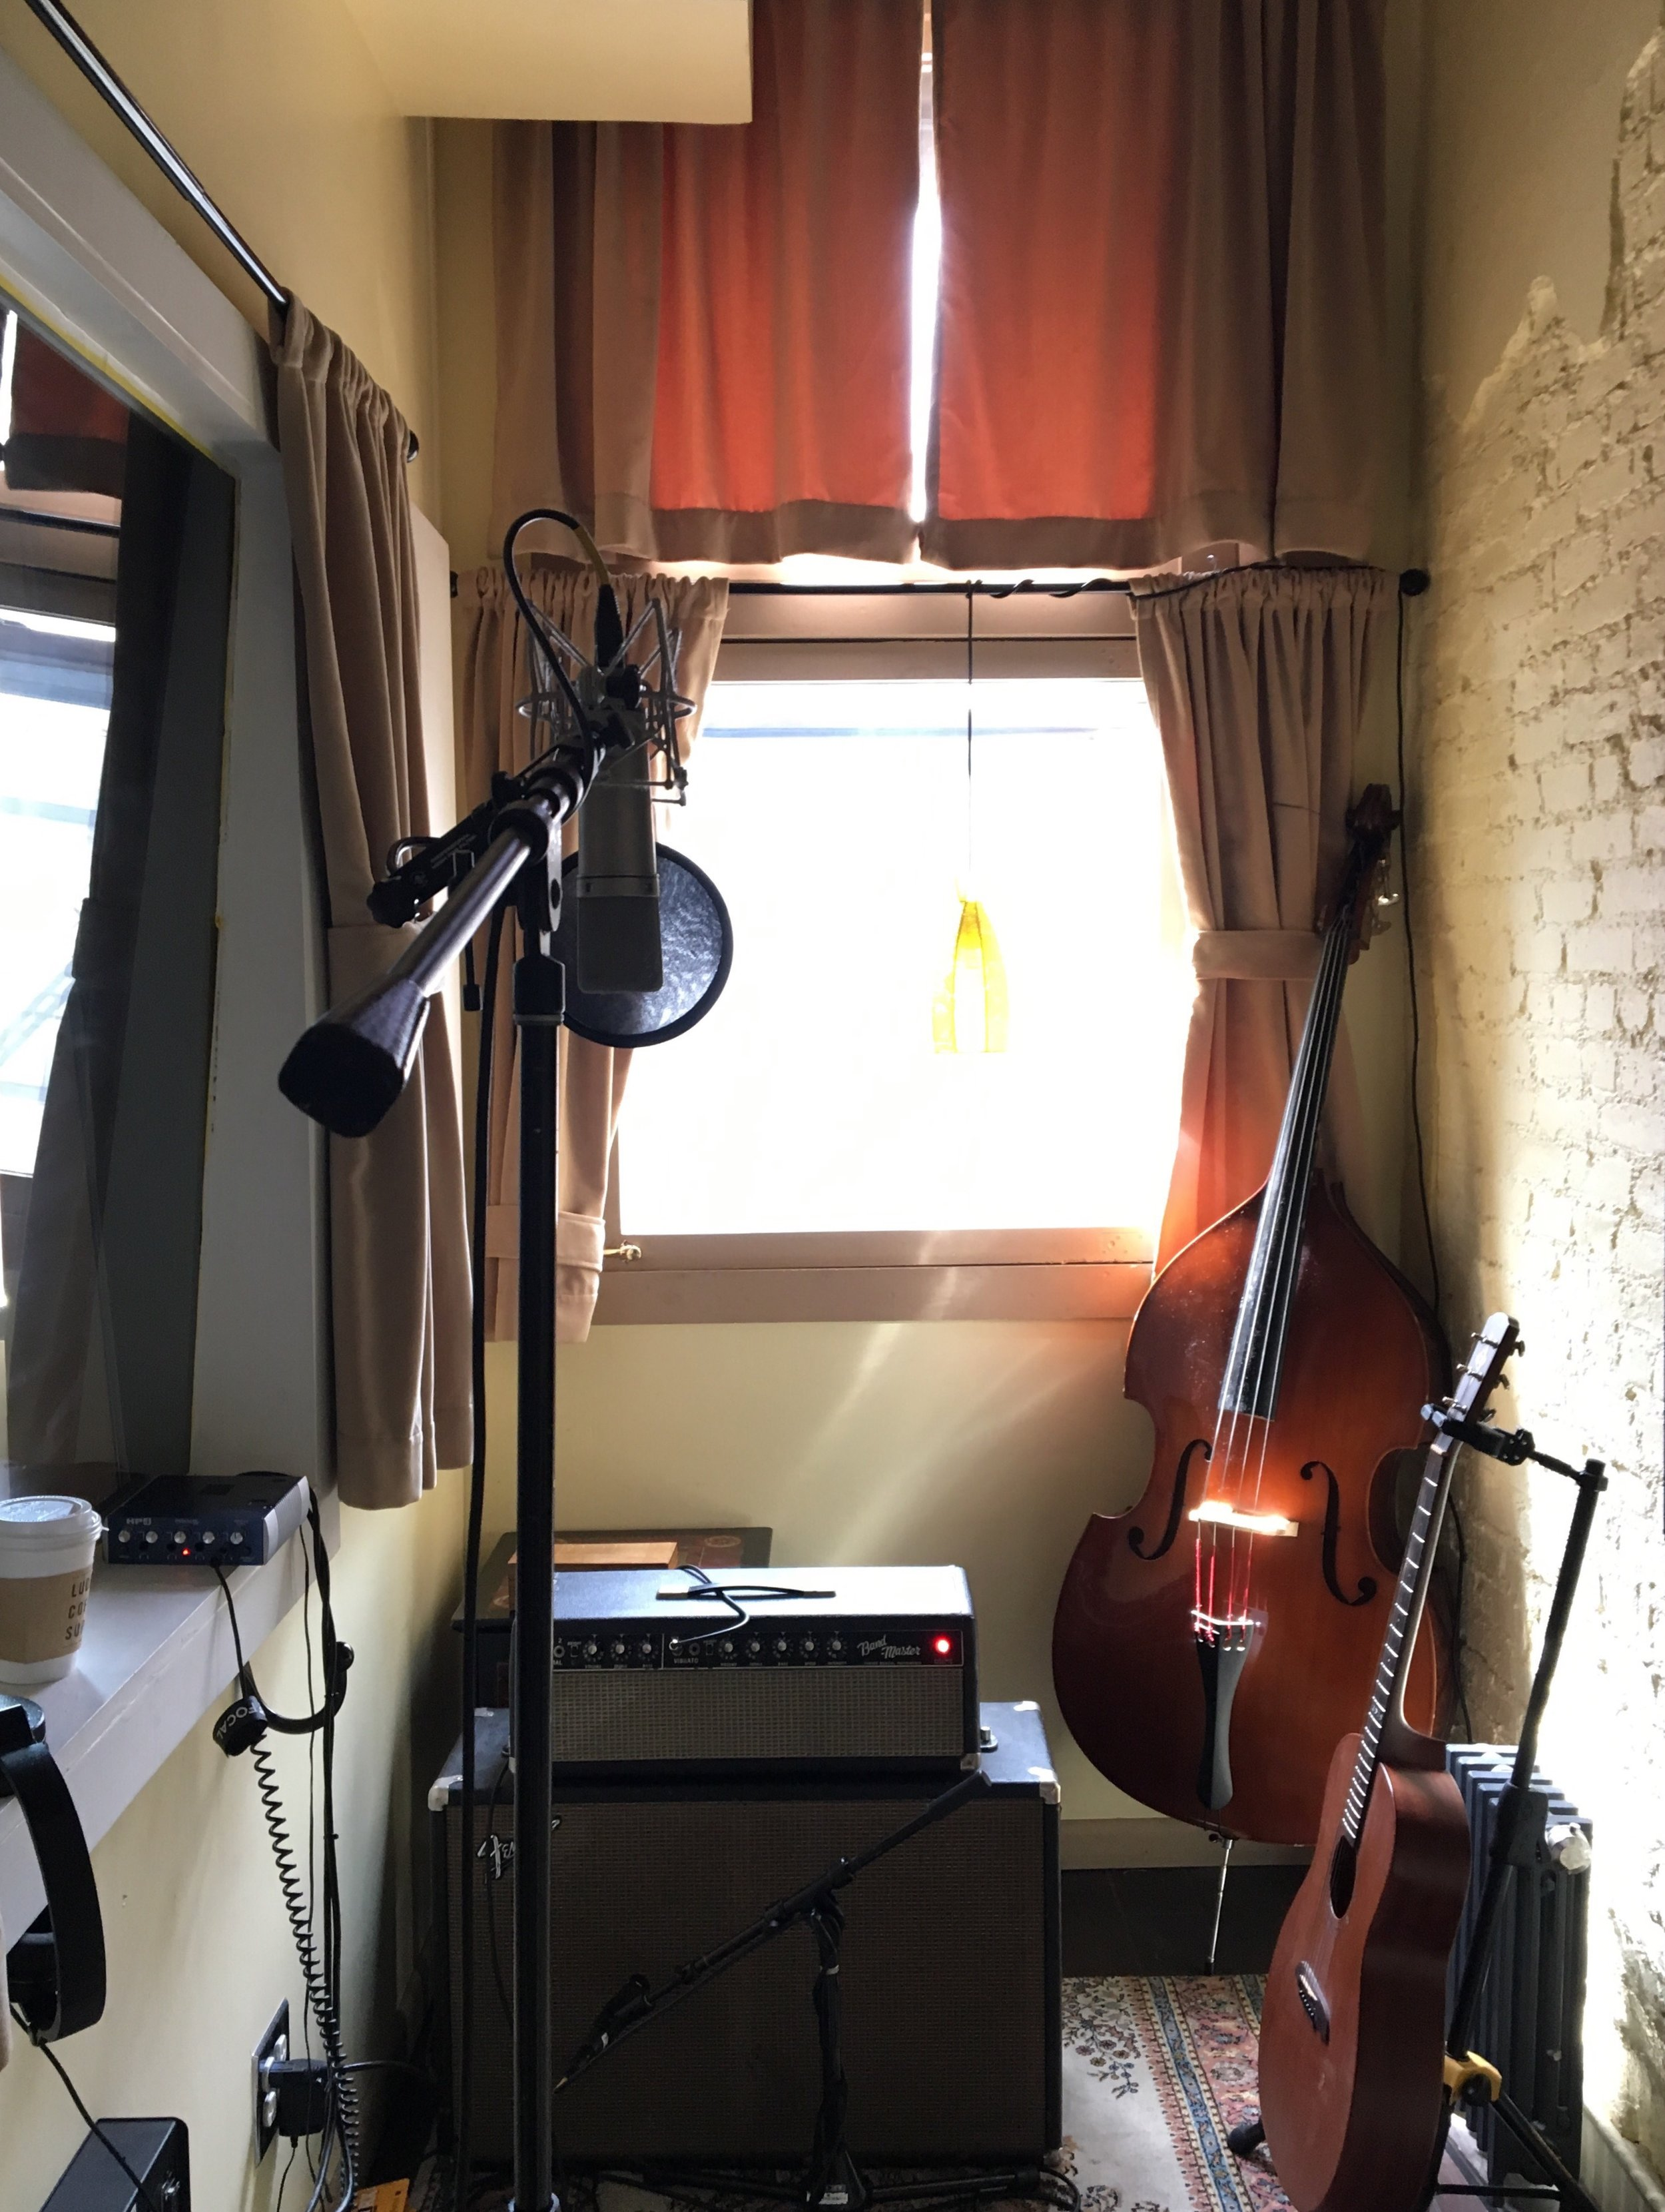 I really came to be so fond of this tiny little booth — I often watched the late afternoon sun fade to early evening standing here, singing my heart out into a mic. It felt like the carpet, the walls, all absorbed the crazy emotion I was giving off in that room.